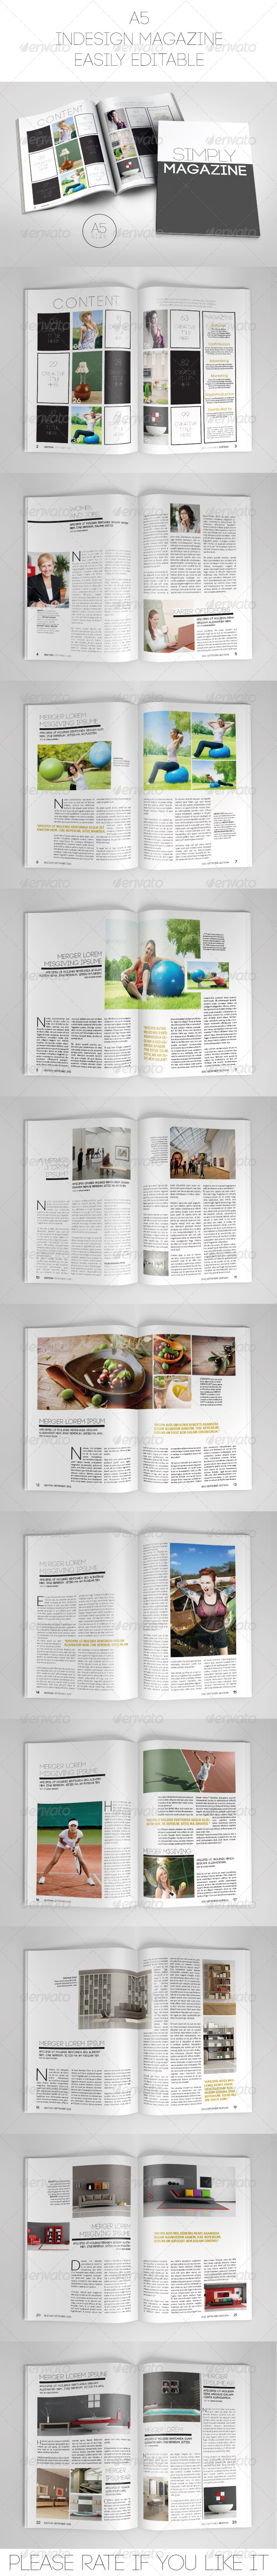 GraphicRiver A5 Magazine Template Portrait 7396655